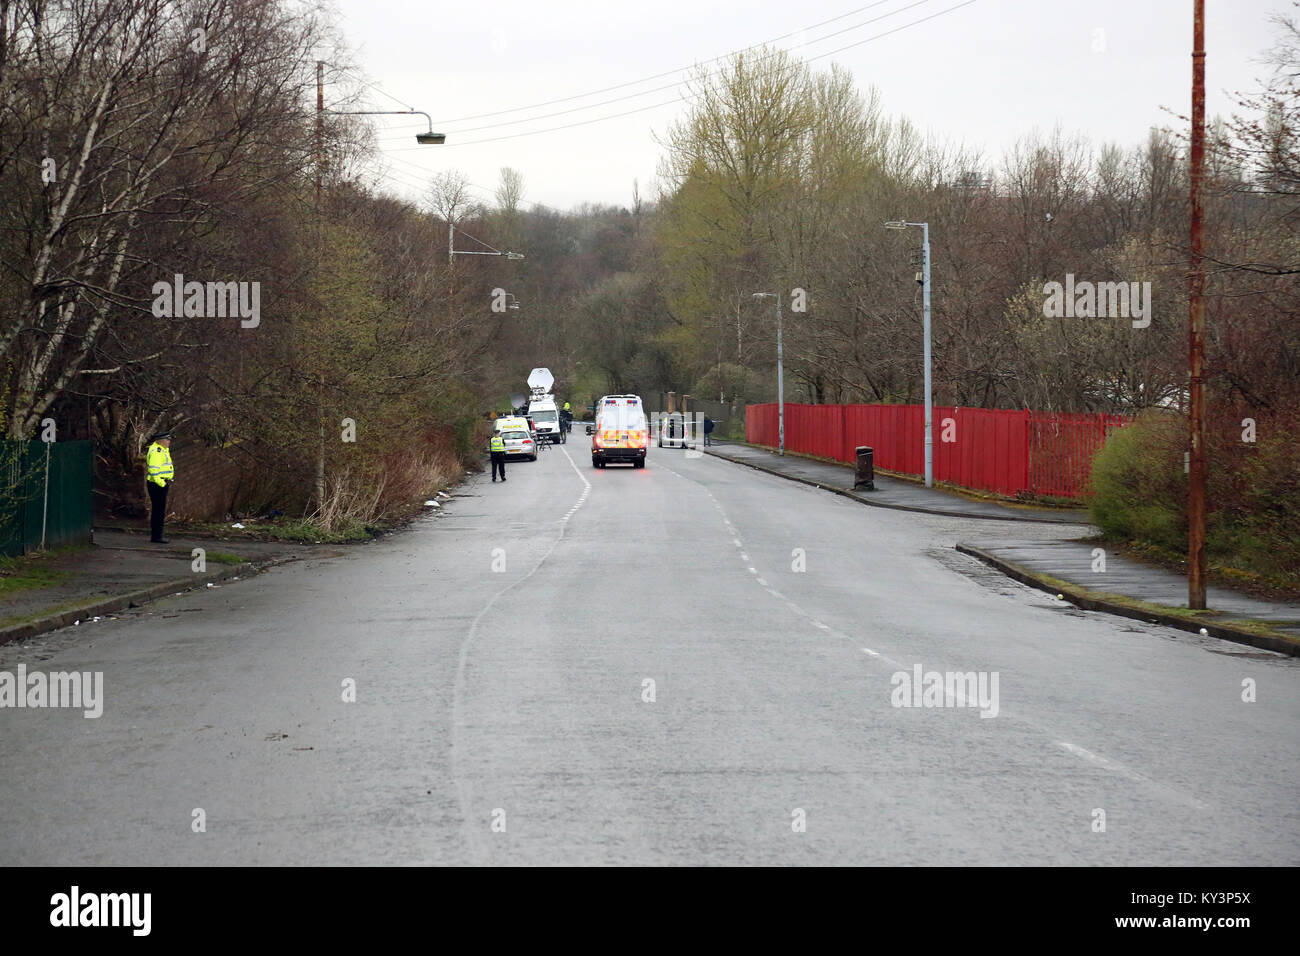 Police during a search, Dalsholm Road at Dawsholm Park, Kelvindale, Glasgow, where Karen Buckley's bag was discarded - Stock Image